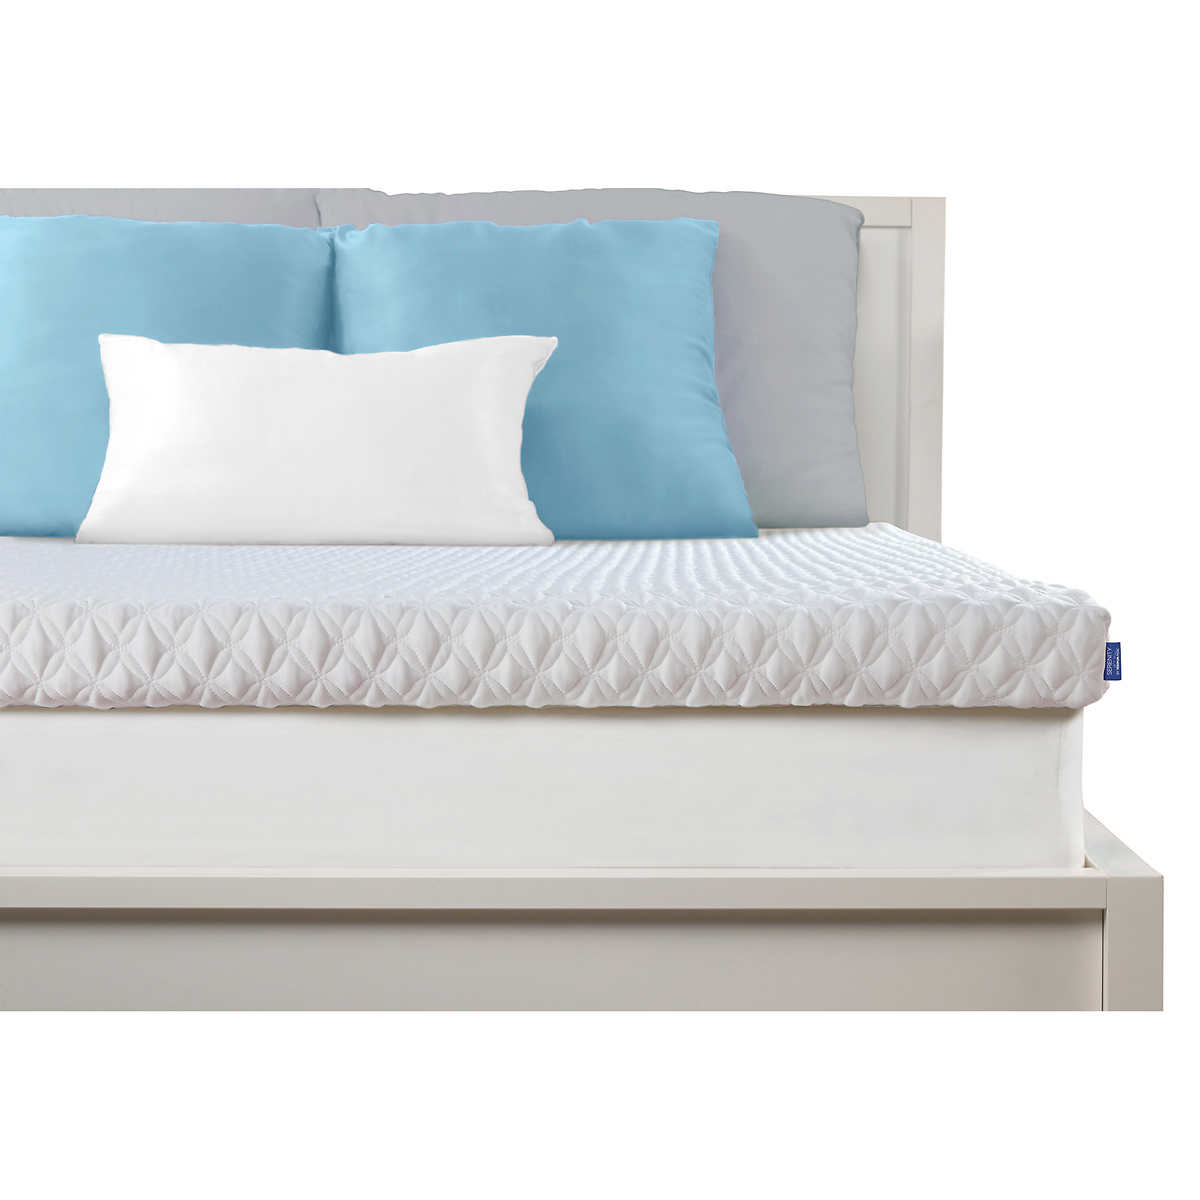 Serenity by Tempur Pedic Memory Foam Mattress Topper (TWIN